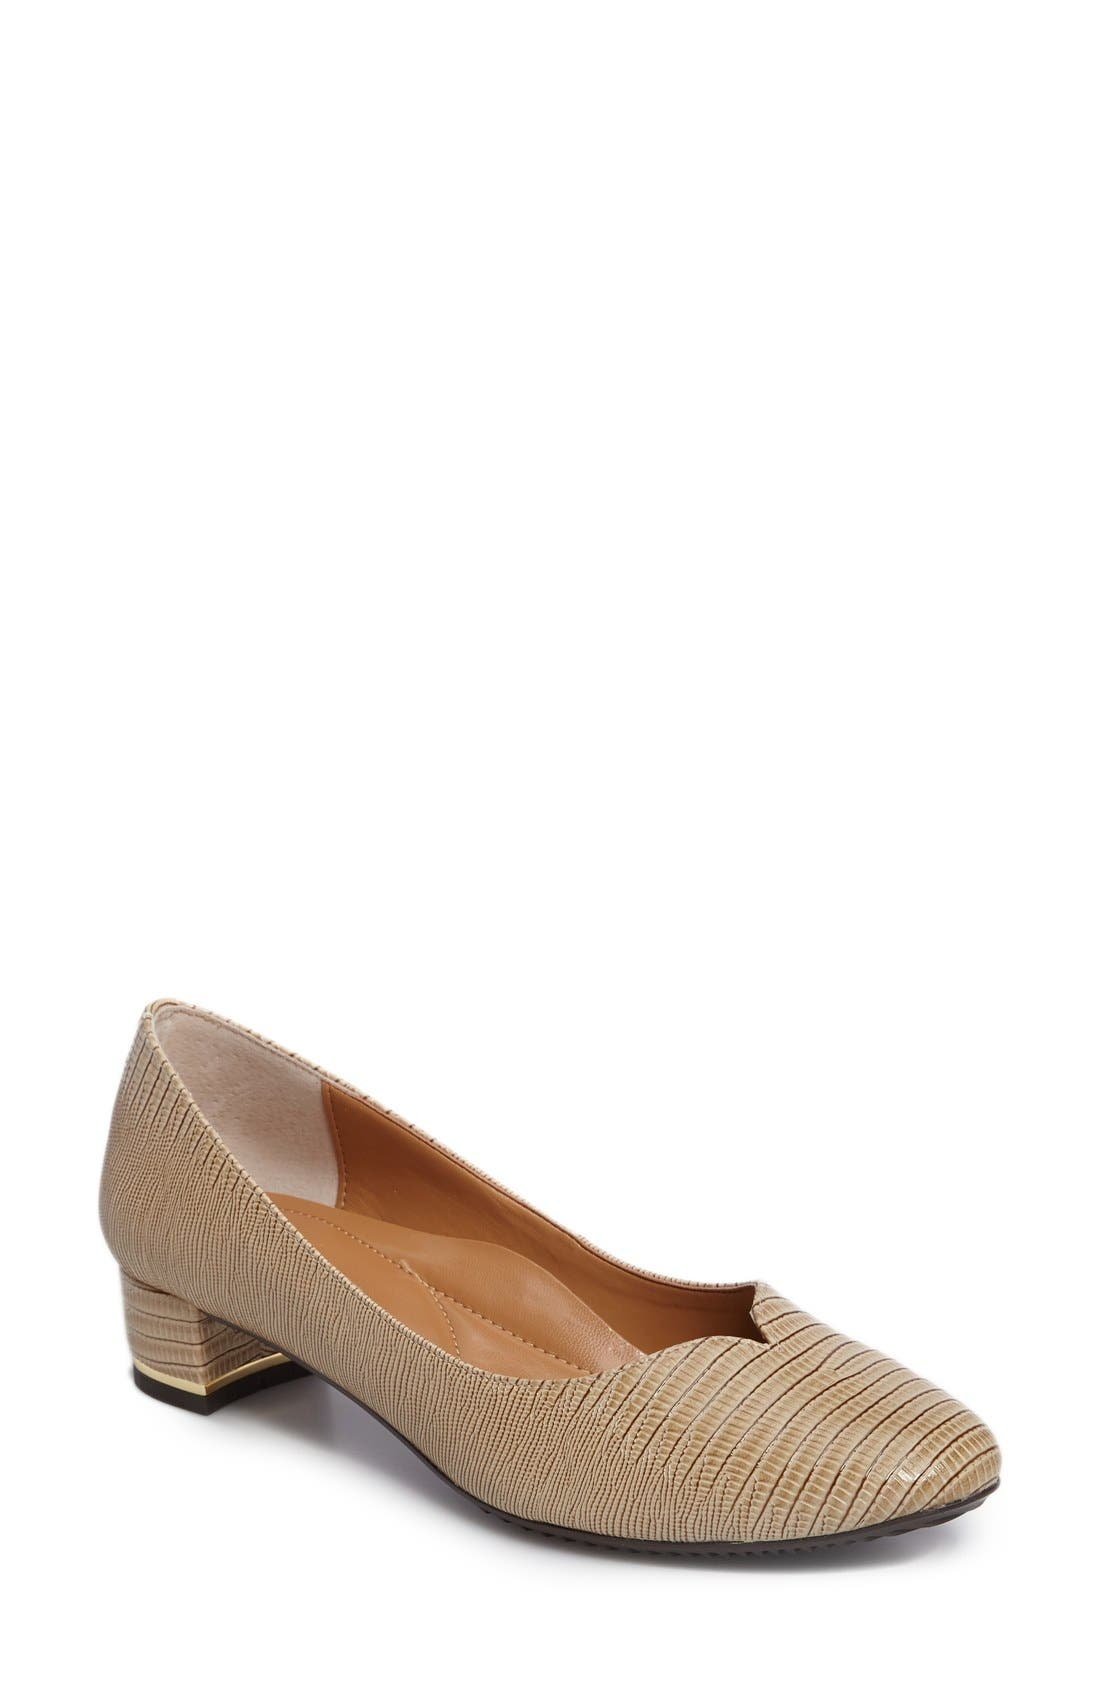 Bambalina Block Heel Pump,                             Main thumbnail 1, color,                             Taupe Faux Leather